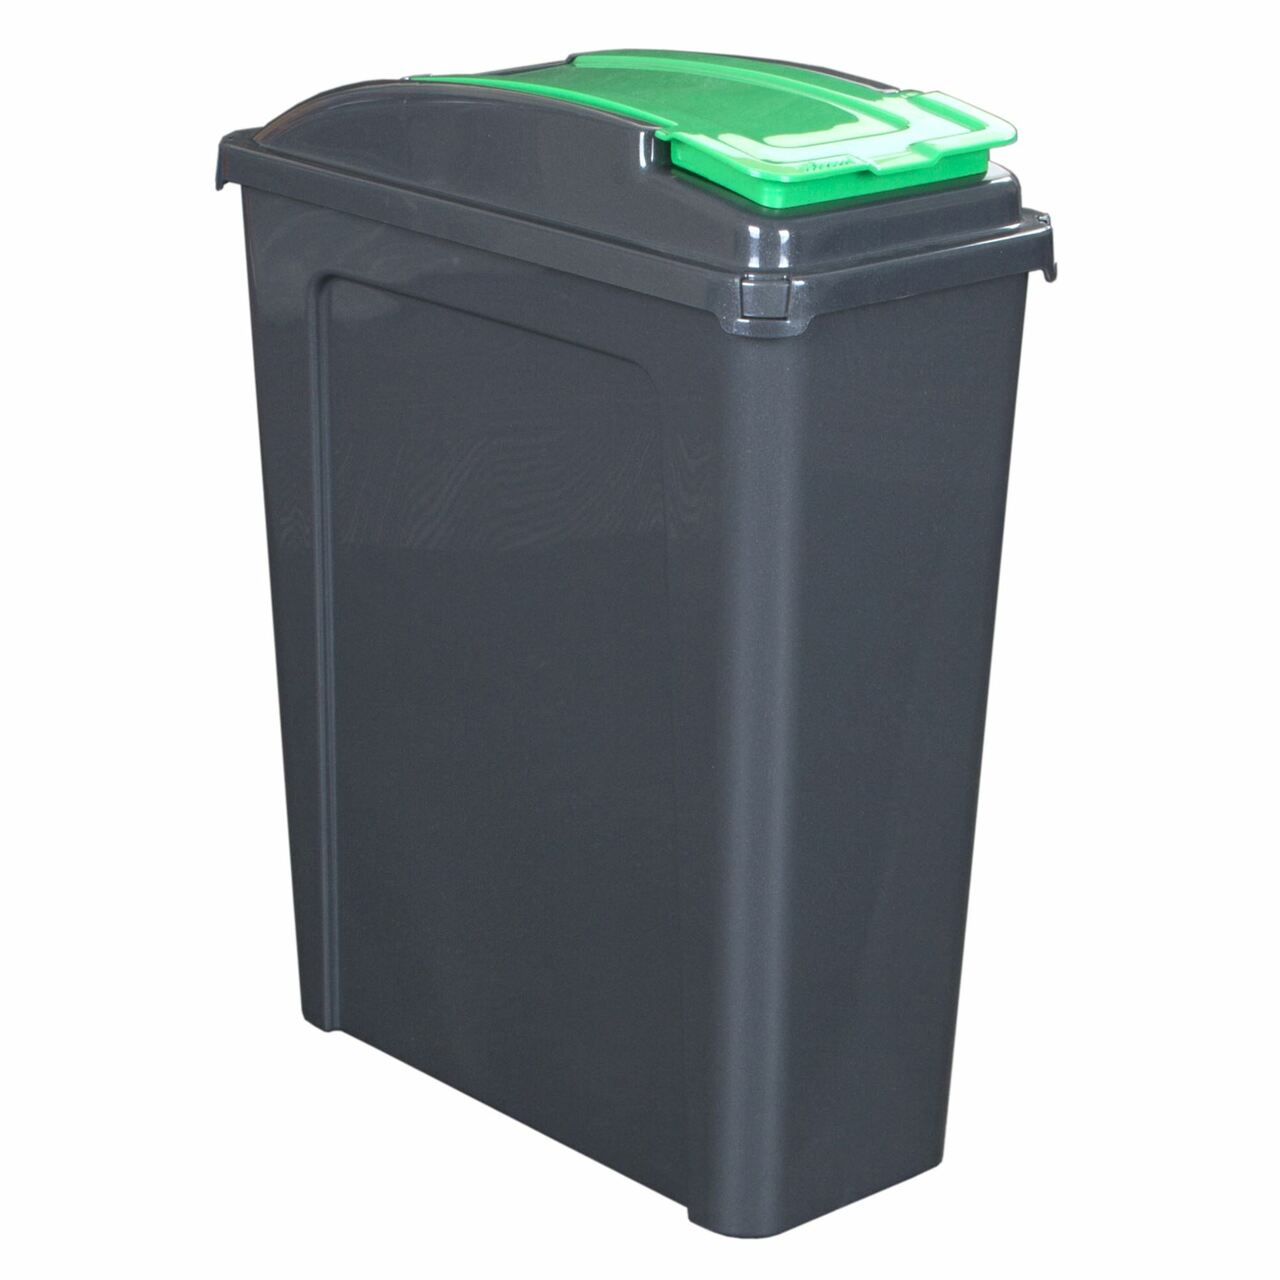 Wham 25 Litre Recycling / Pet Food Storage Bin - Green & Graphite, Pet Food Containers by Dog In A Box